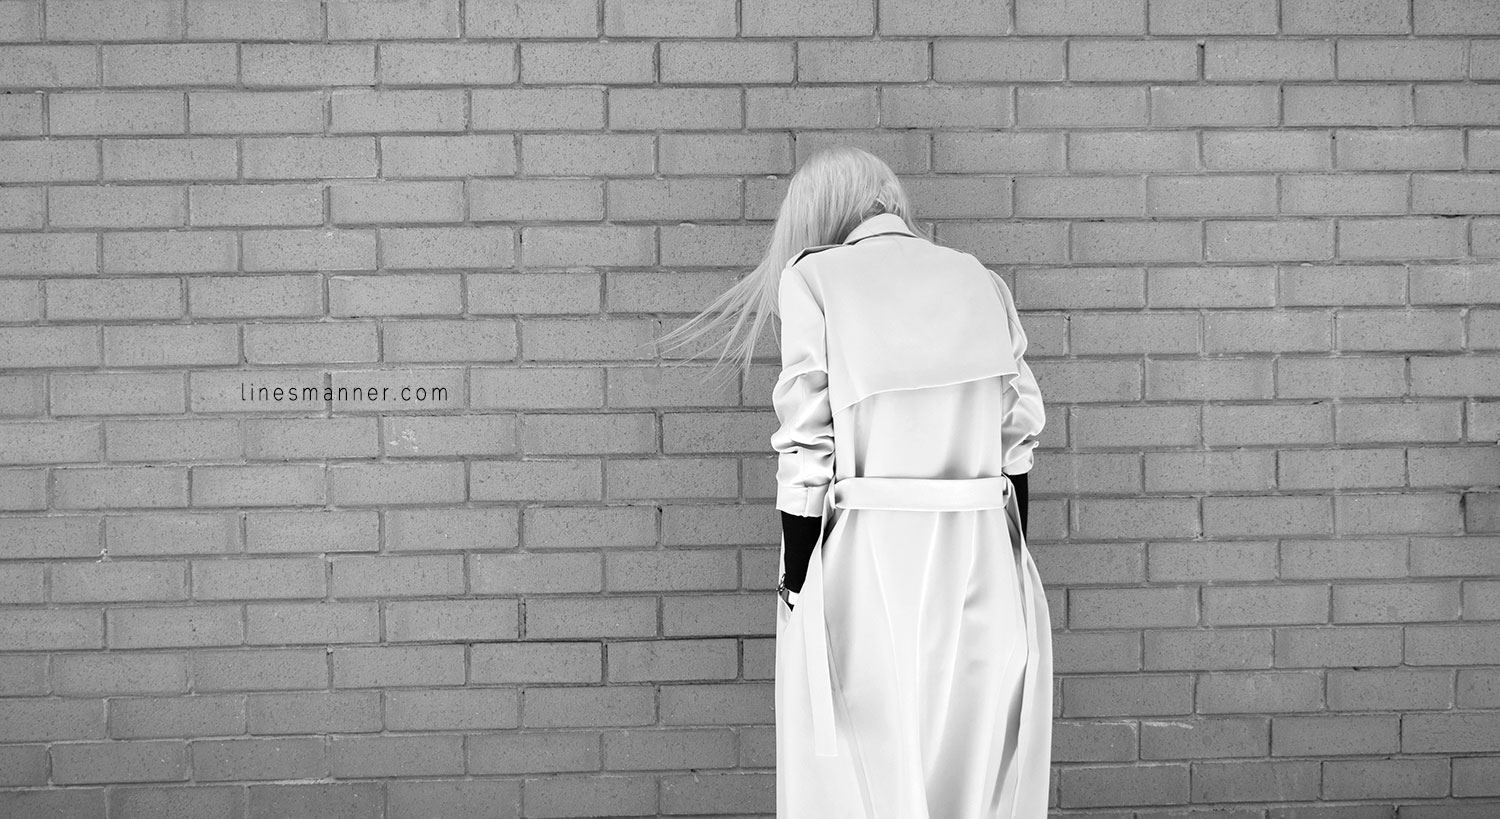 Lines-Manner-Trench-Minimal-Outfits-Fashion-Essentials-Classics-Timeless-Versatile-Details-Hues-Nonchalance-Elegance-Casual-Effortless-4